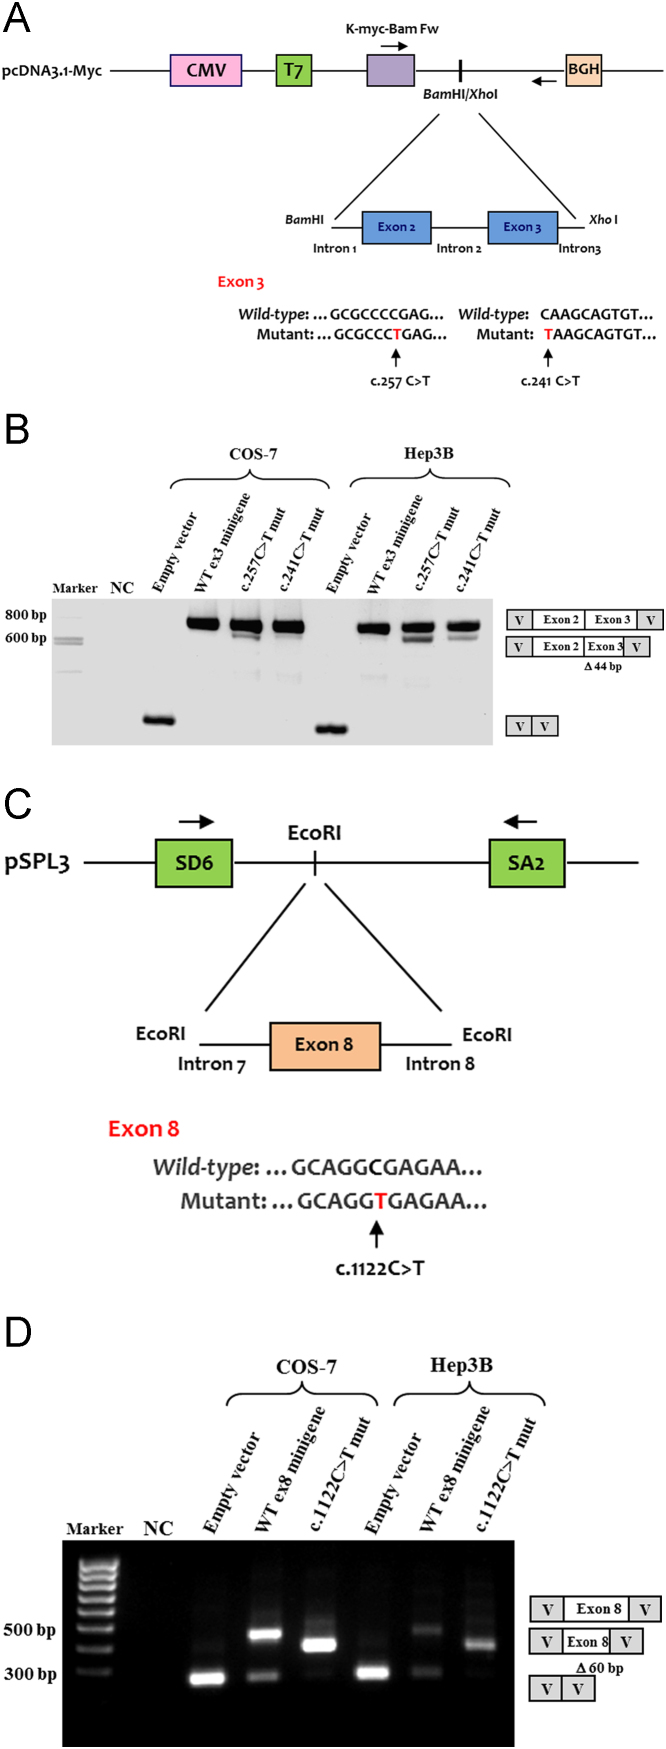 Splicing assays for the wild-type (WT) and mutant minigenes corresponding to the IDS nucleotide changes c.257C > T and c.241C > T in exon 3, and c.1122C > T in exon 8. (A, C) Diagrams of the reporter minigenes used in the functional splicing experiments. Normal and mutated genomic IDS sequences were cloned into the pcDNA3.1-myc or pSPL3 vectors to generate the indicated minigenes. Exons are shown by boxes and introns by straight lines. For all exonic alterations, the WT and mutant regions are shown and the specific changes marked by an arrow. (B, D) Wild-type and mutant minigenes were transfected into COS-7 and Hep3B cells and the splicing pattern analyzed by RT-PCR using the indicated vector-specific primers (arrows in diagrams A and C). Minigene expression of the splicing mutations in exon 3 (c.257C > T and c.241C > T) revealed two transcripts, a predominant one with exon 2 and a mutated exon 3, and a minor transcript of smaller size in which the first 44 nucleotides of exon 3 were missing. The WT minigene produced a single transcript of normal size (B). For the synonymous c.1122C > T change in exon 8, the mutant minigene showed a single transcript lacking the last 60bp of exon 8. The WT construct produced two bands, one corresponding to the transcript with exon 8 inserted, the other to a transcript resulting from an expected splicing event between the vector splice sites (D). A diagram of the bands characterized by sequence analysis is also provided. NC – negative control; V – vector sequence.